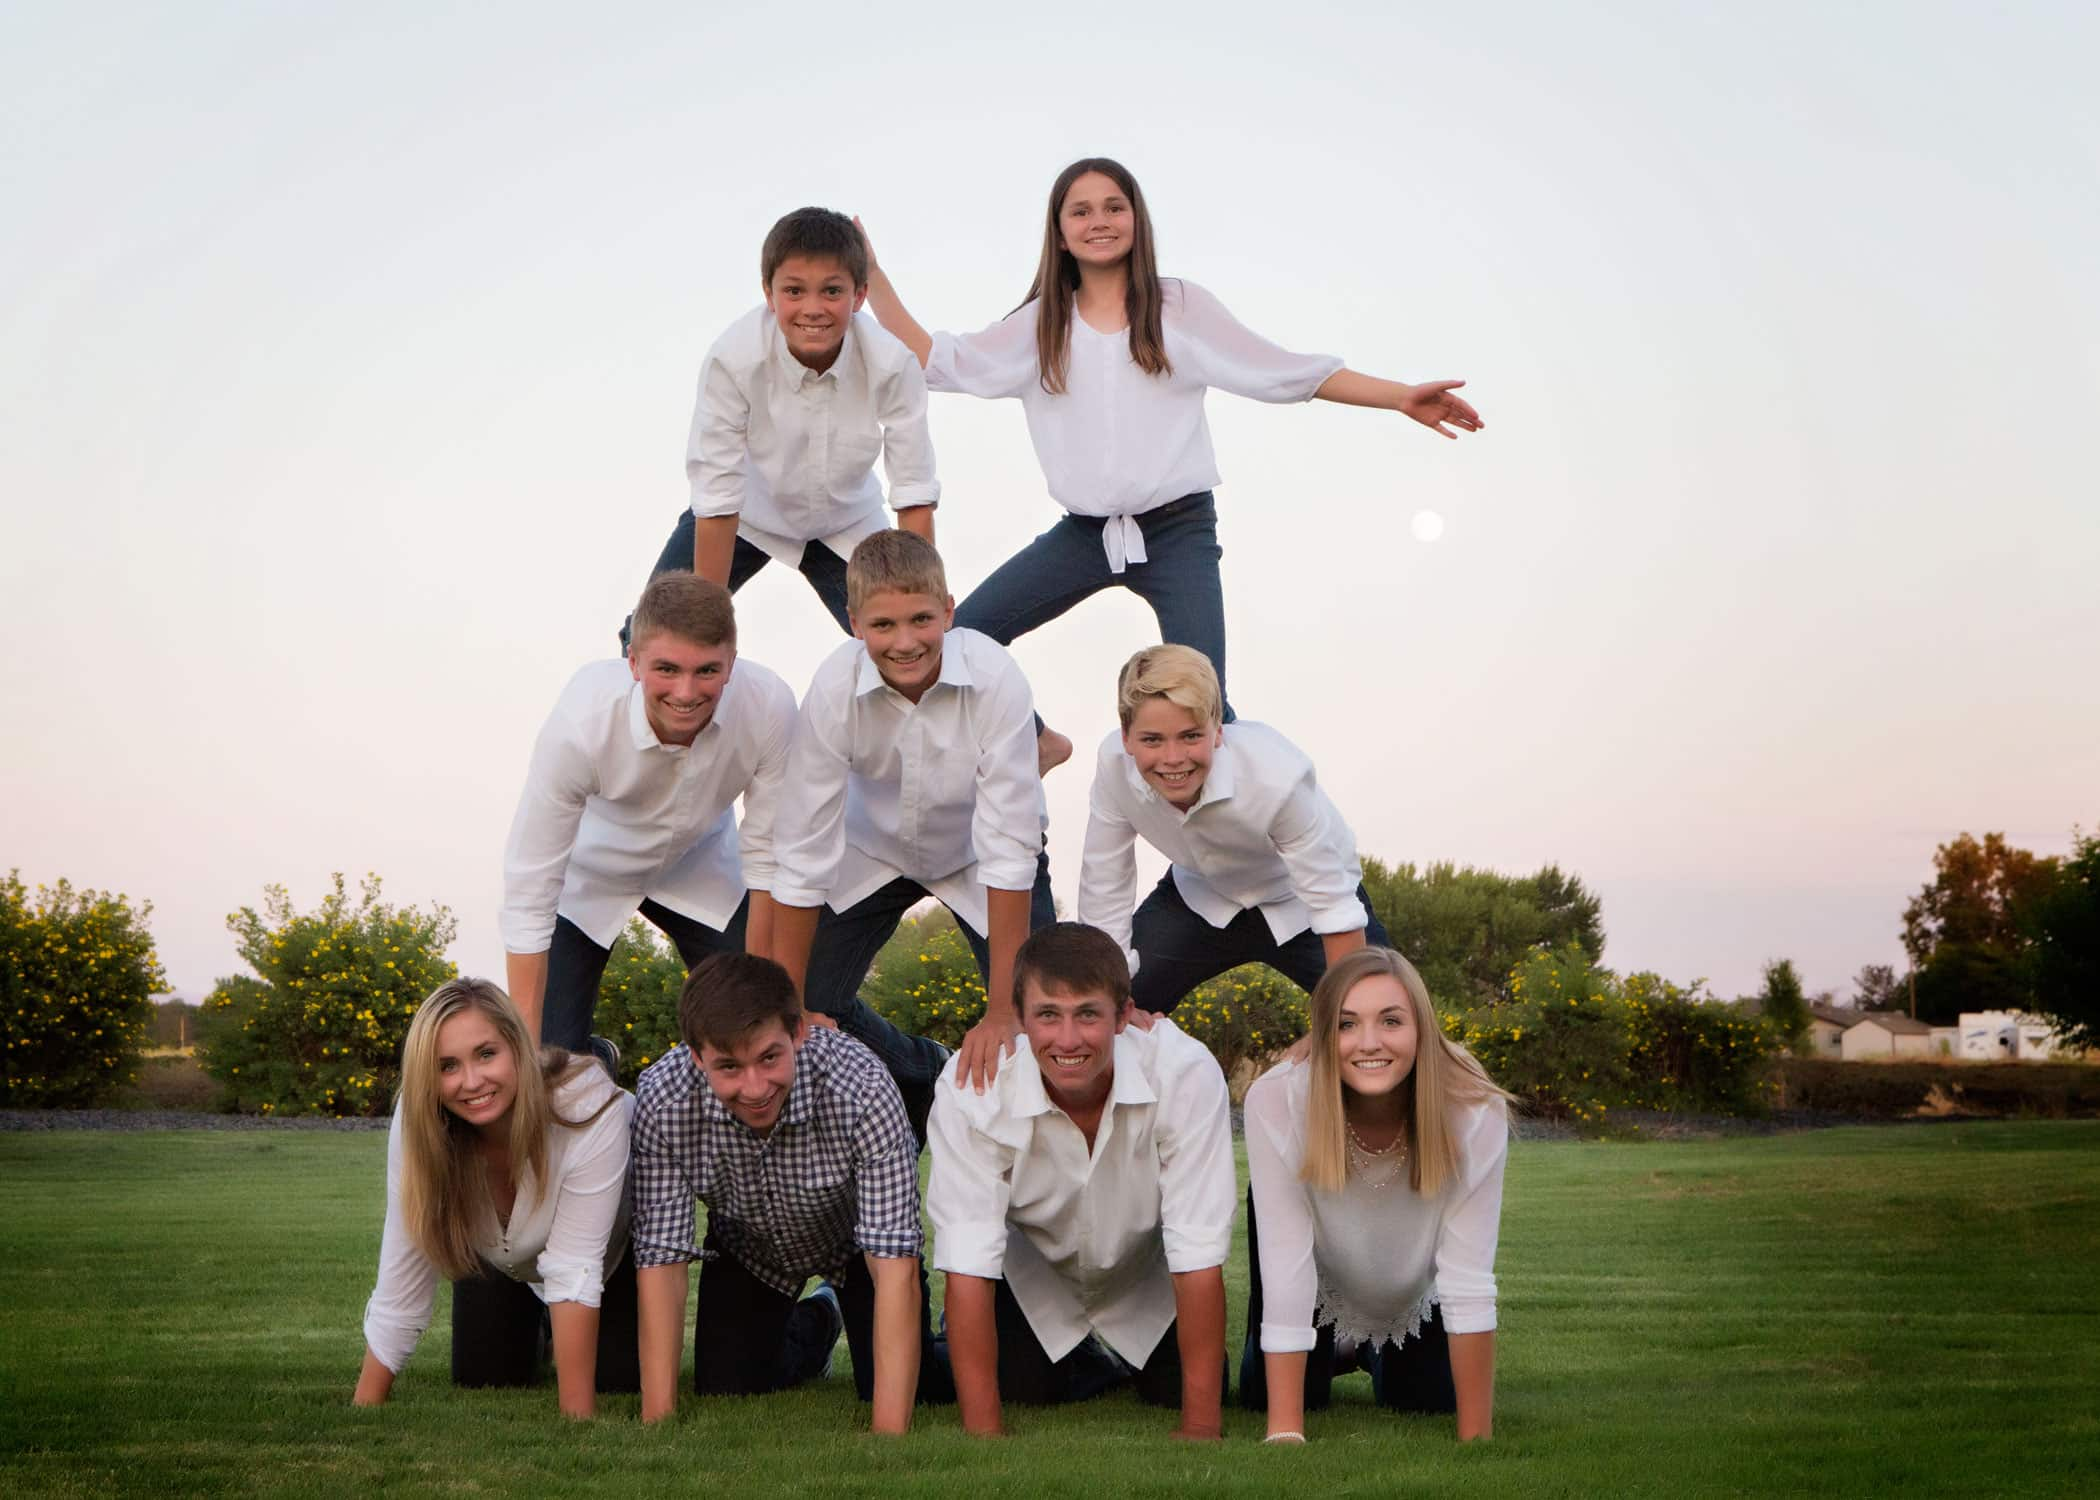 Family in a human pyramid